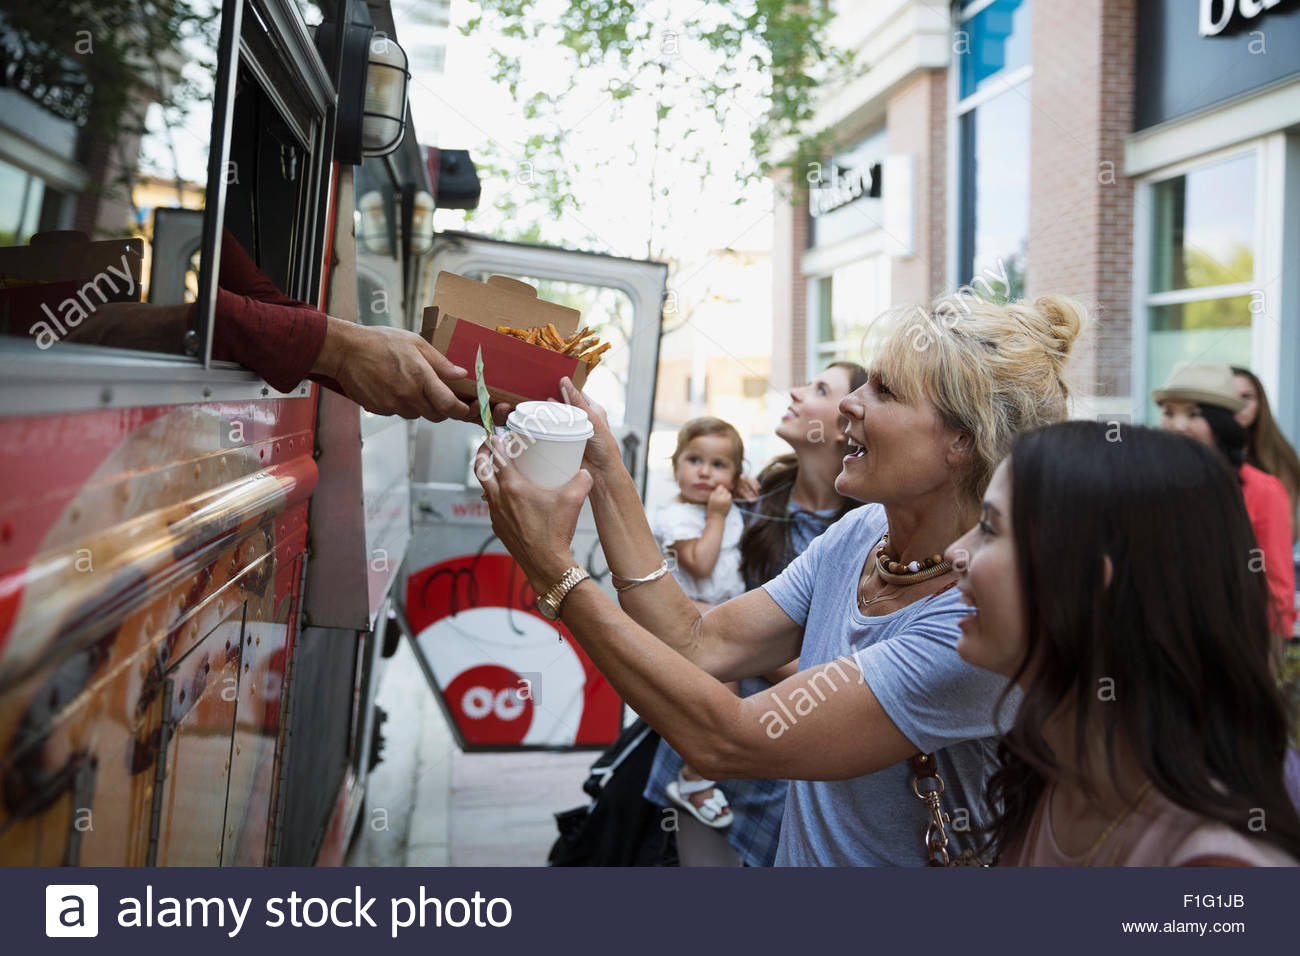 Customers receiving food outside food truck - Stock Image